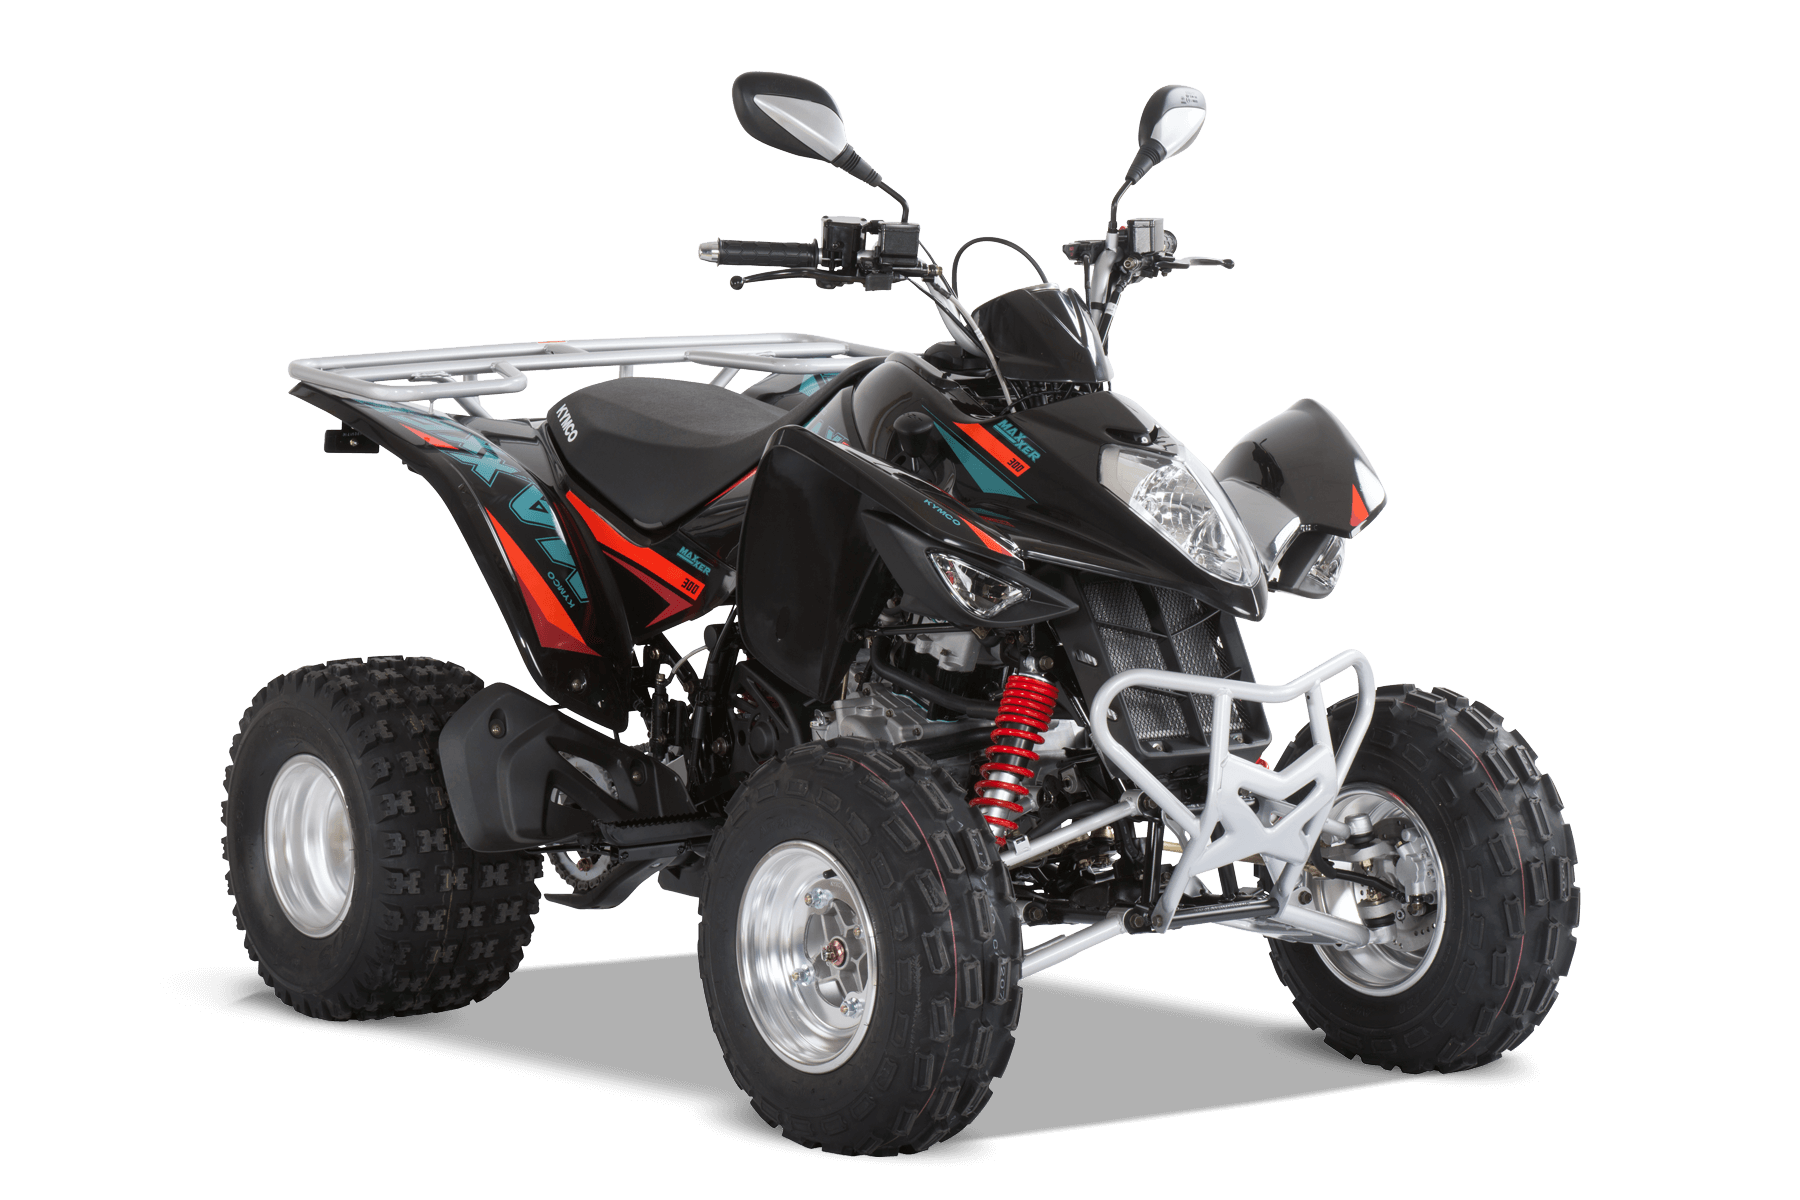 kymco maxxer 300 on offroad lof qjc powersportcenter. Black Bedroom Furniture Sets. Home Design Ideas